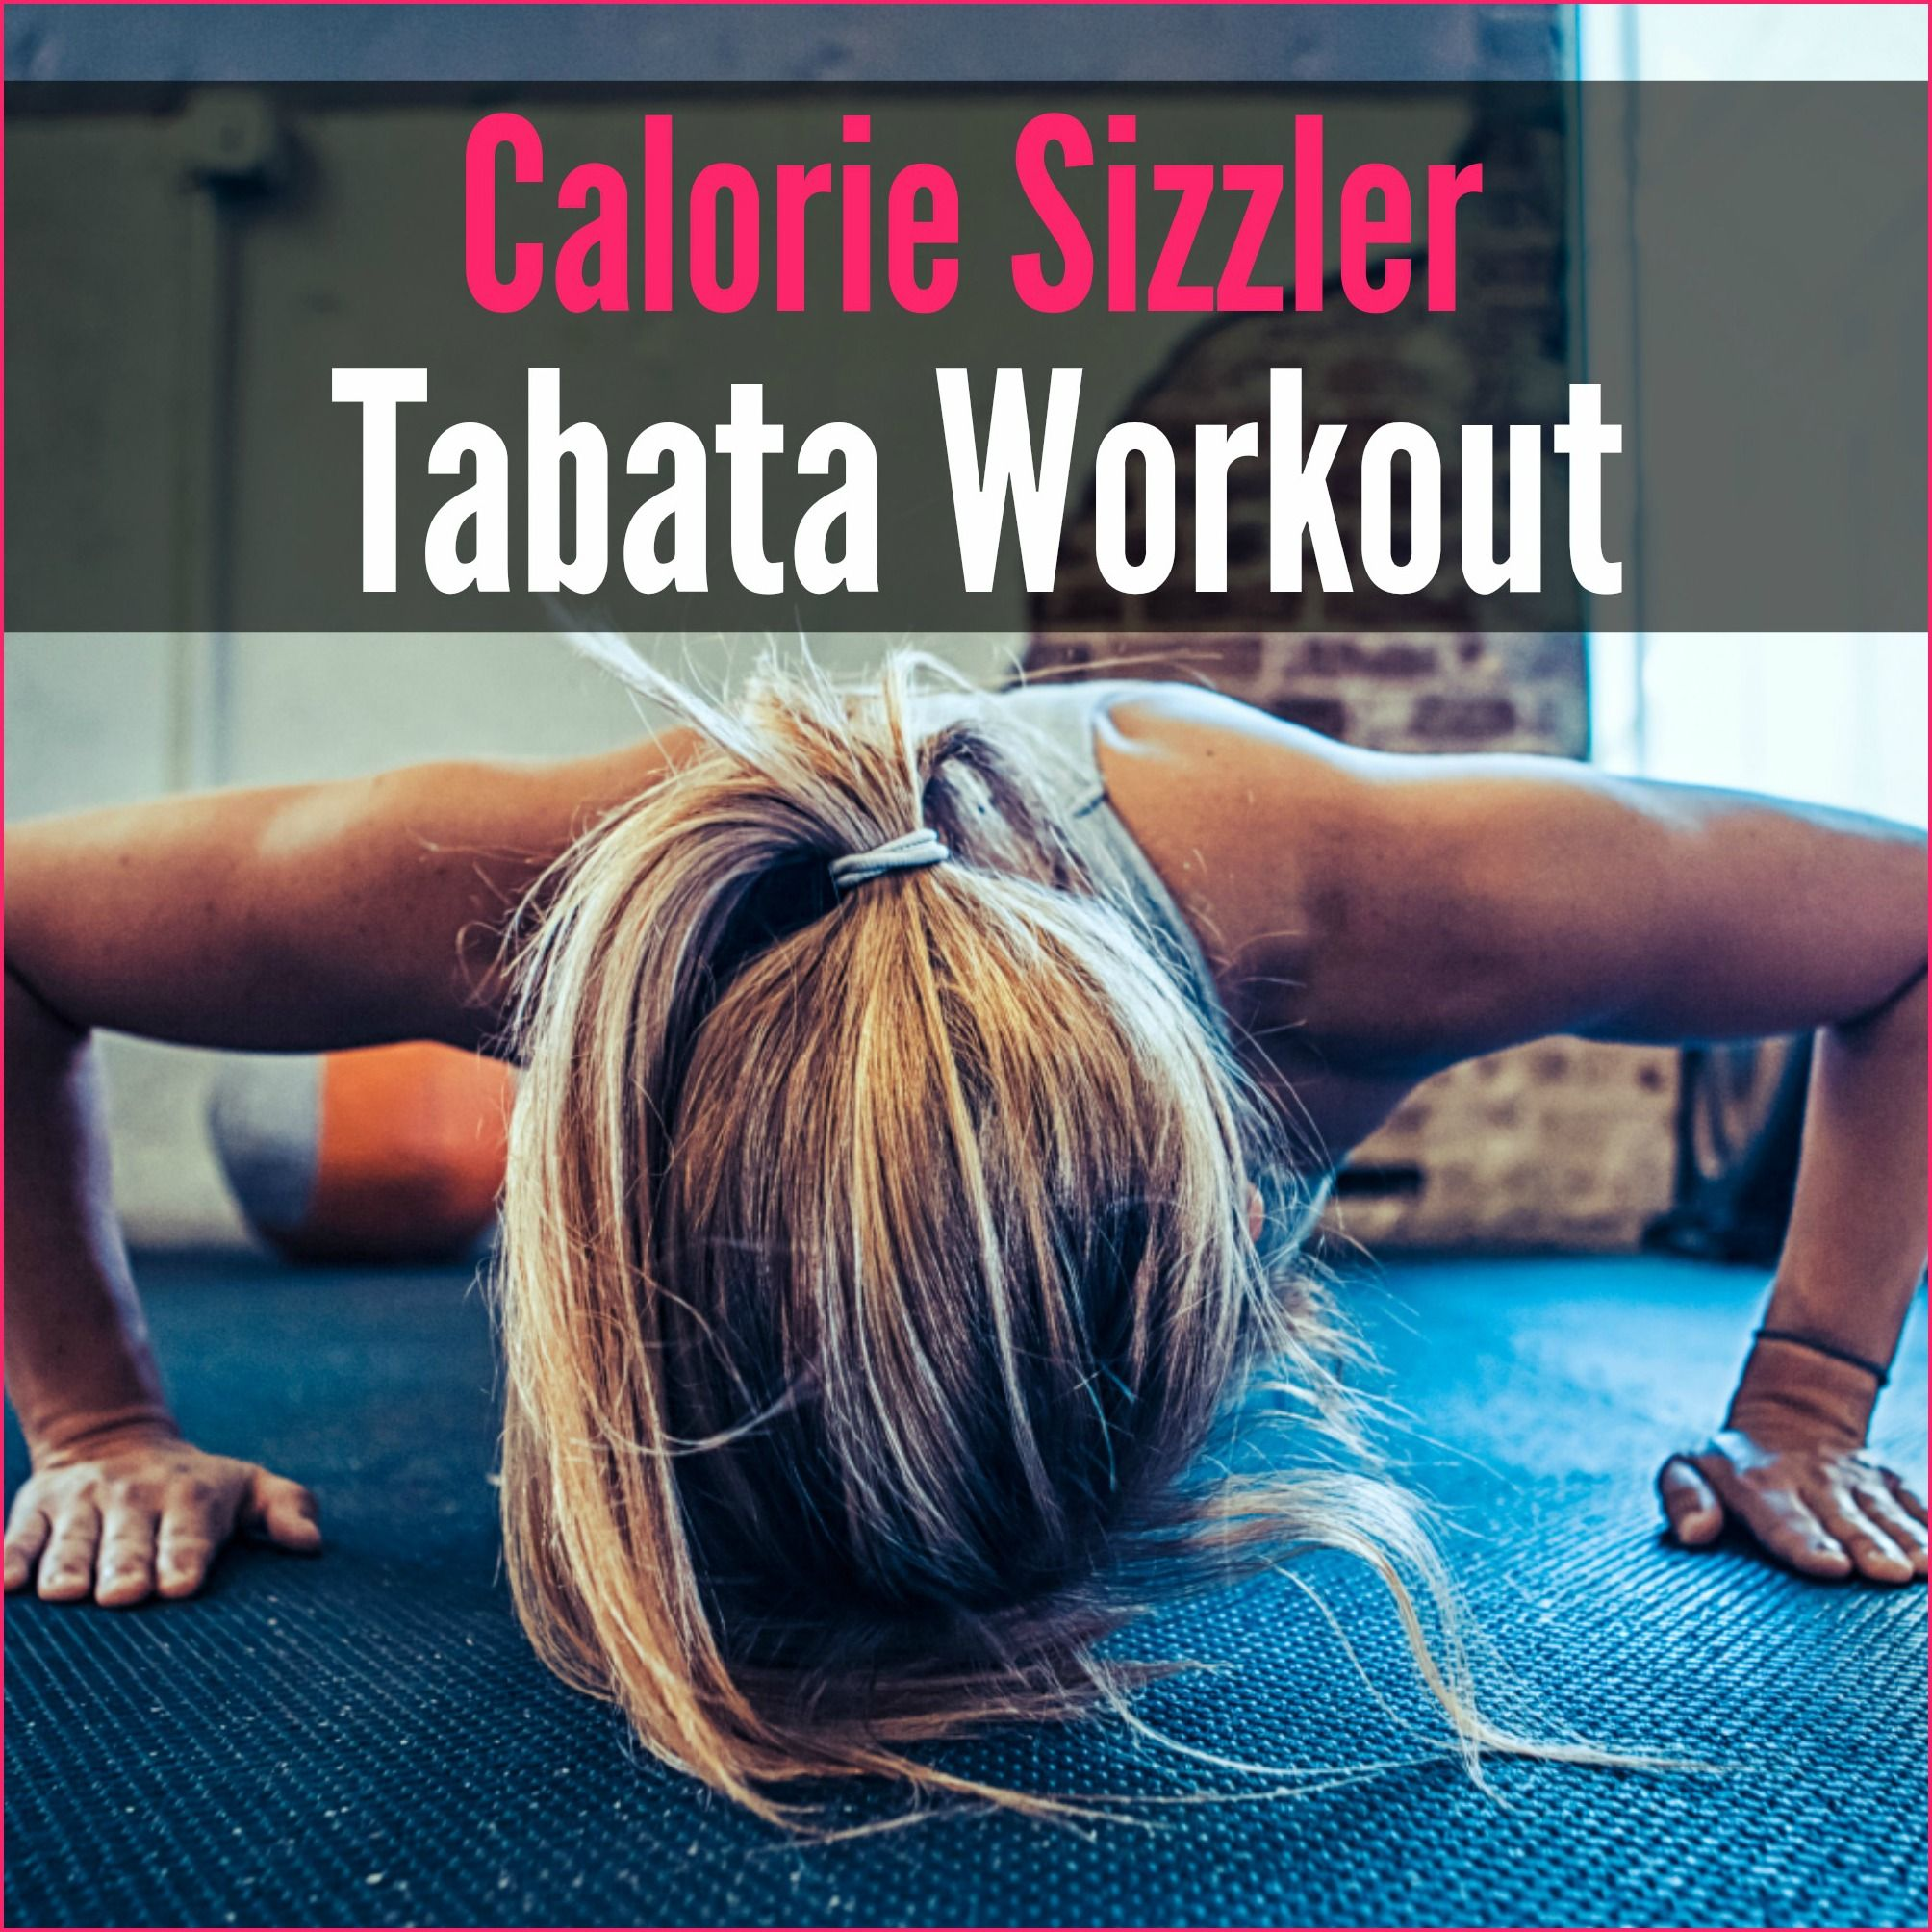 This fun workout combines tabata-style intervals with superset strength training rounds to make one heck of a full-body cardio and strength routine!